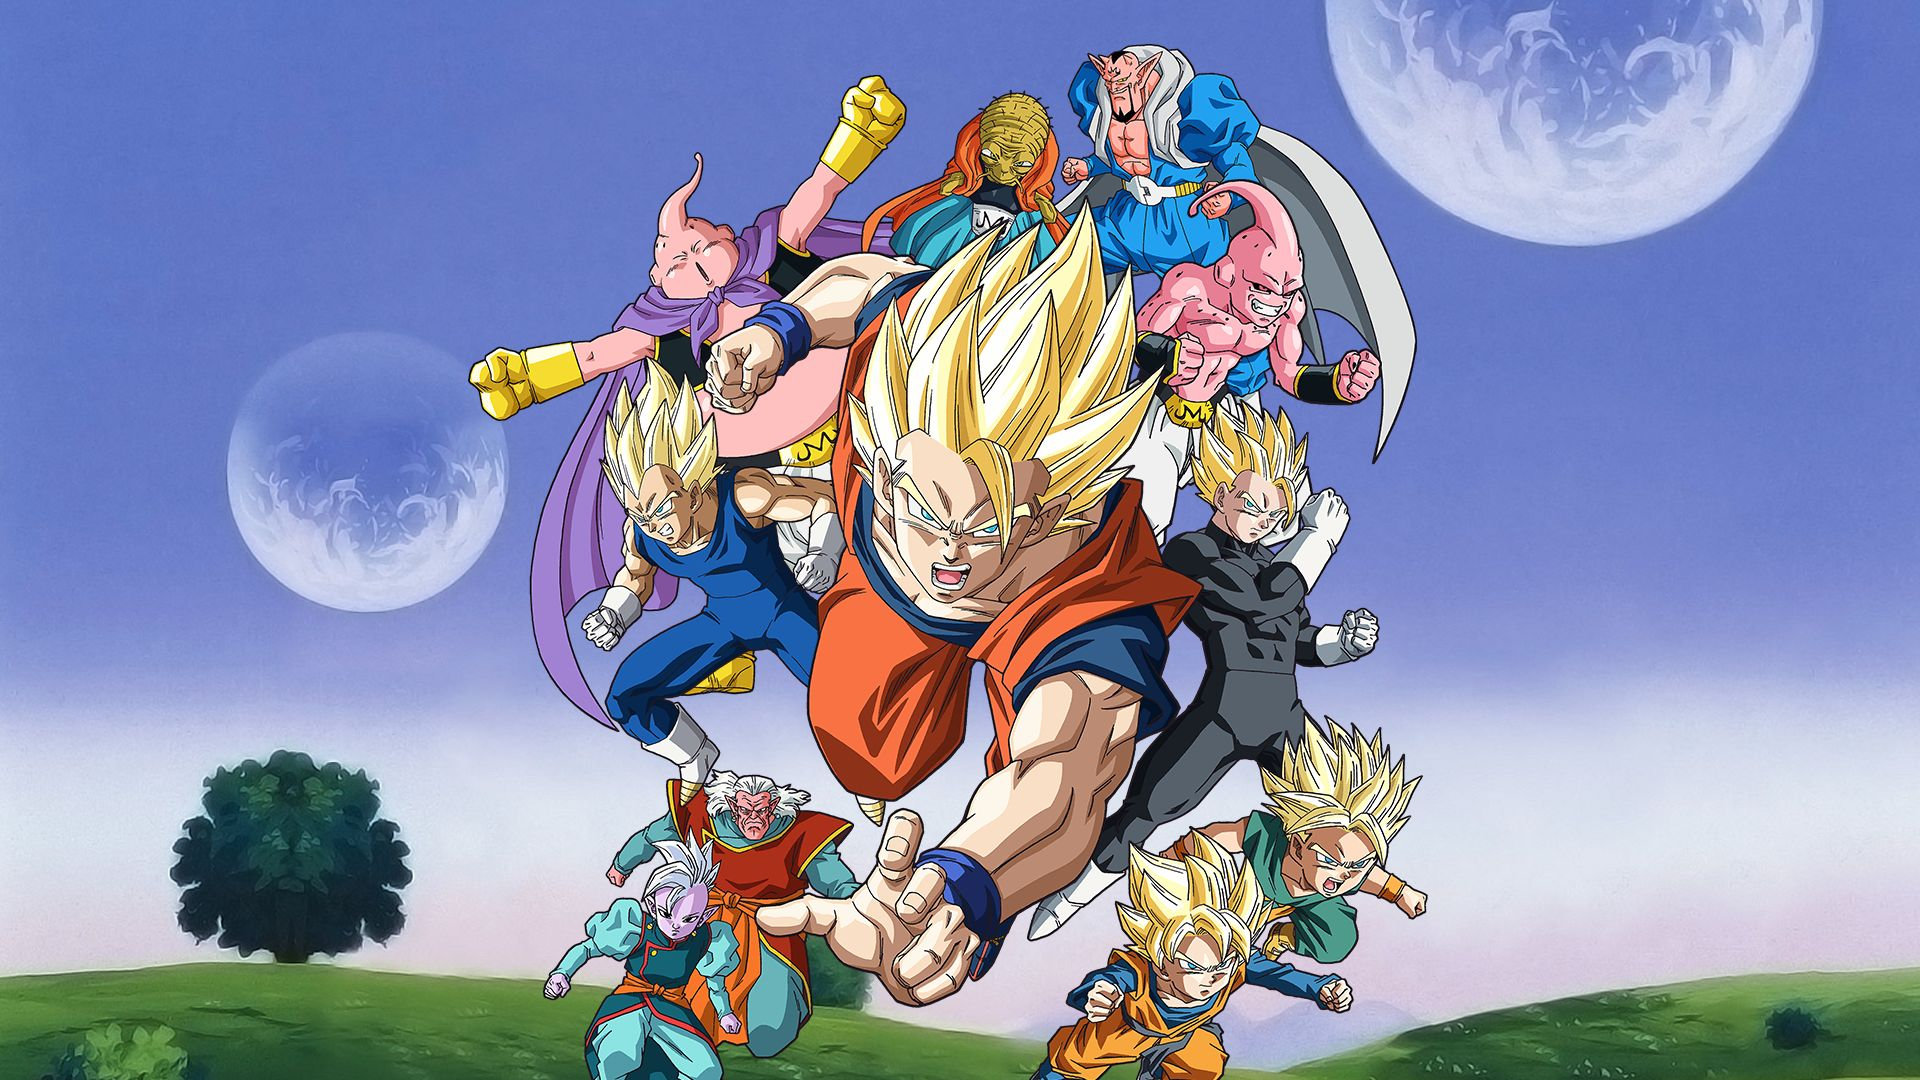 In 2013, Toei Animation produced Dragon Ball Z: Battle of Gods, the first new Dragon Ball movie since 1996. In March of this year, a second film, ...